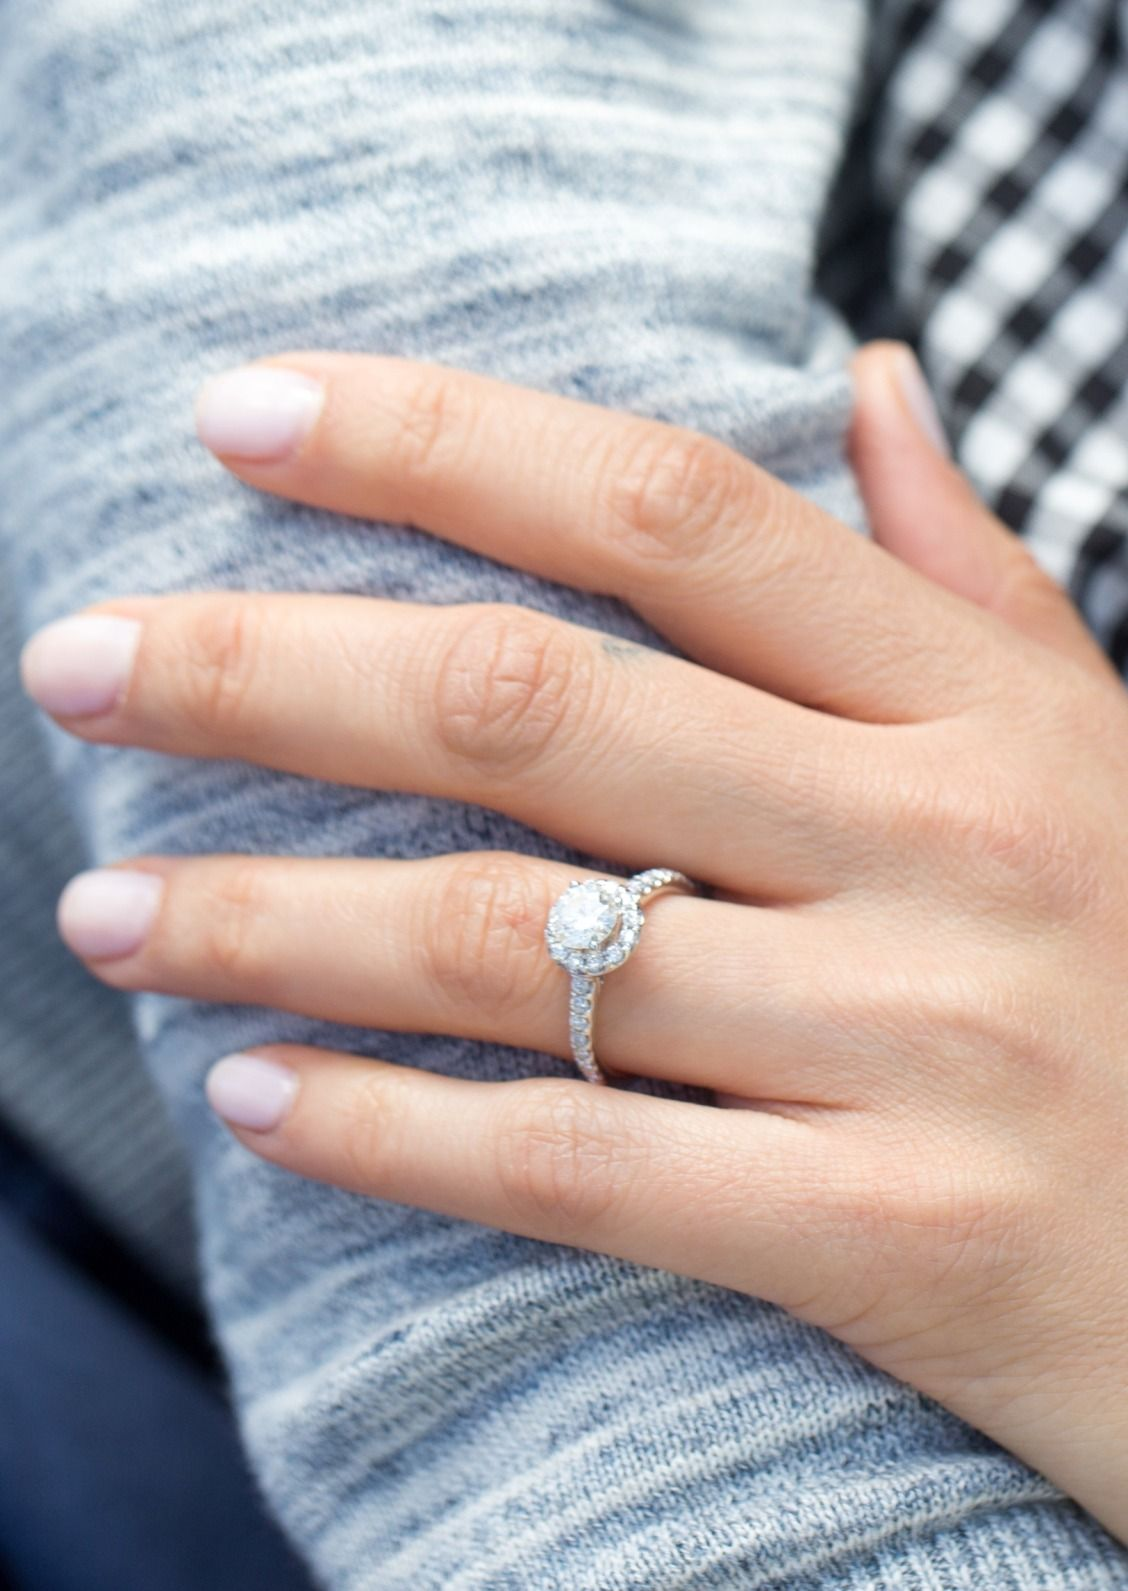 She Ll Want To Hold Onto This Tolkowsky Diamond Halo Engagement Ring Forever With Images Round Halo Engagement Rings Tolkowsky Engagement Rings Best Engagement Rings